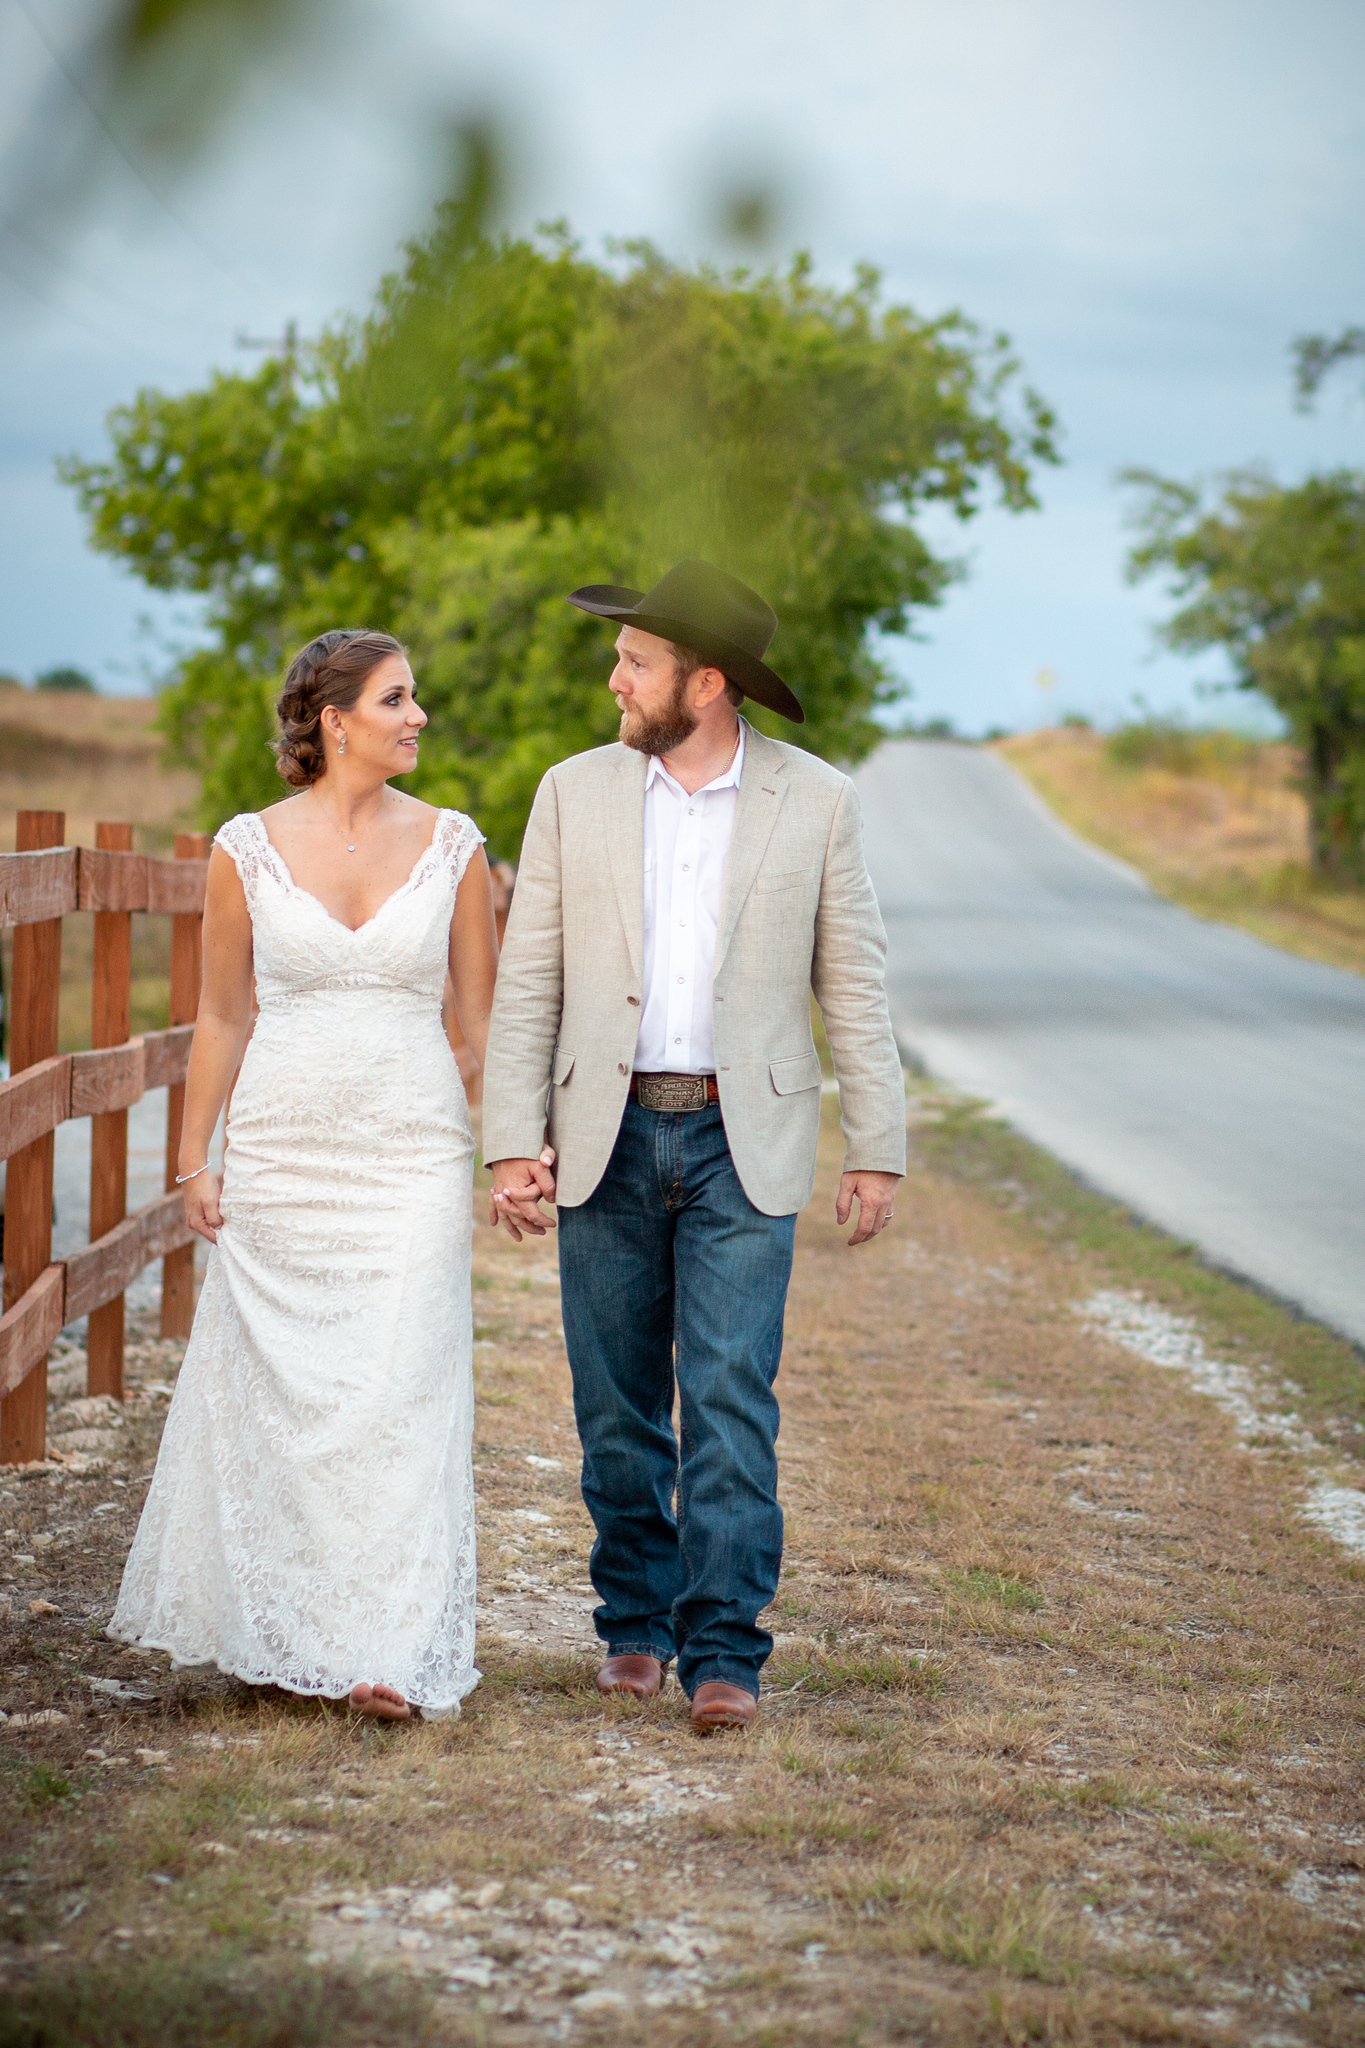 wedding couple holding hands while walking down a remote road